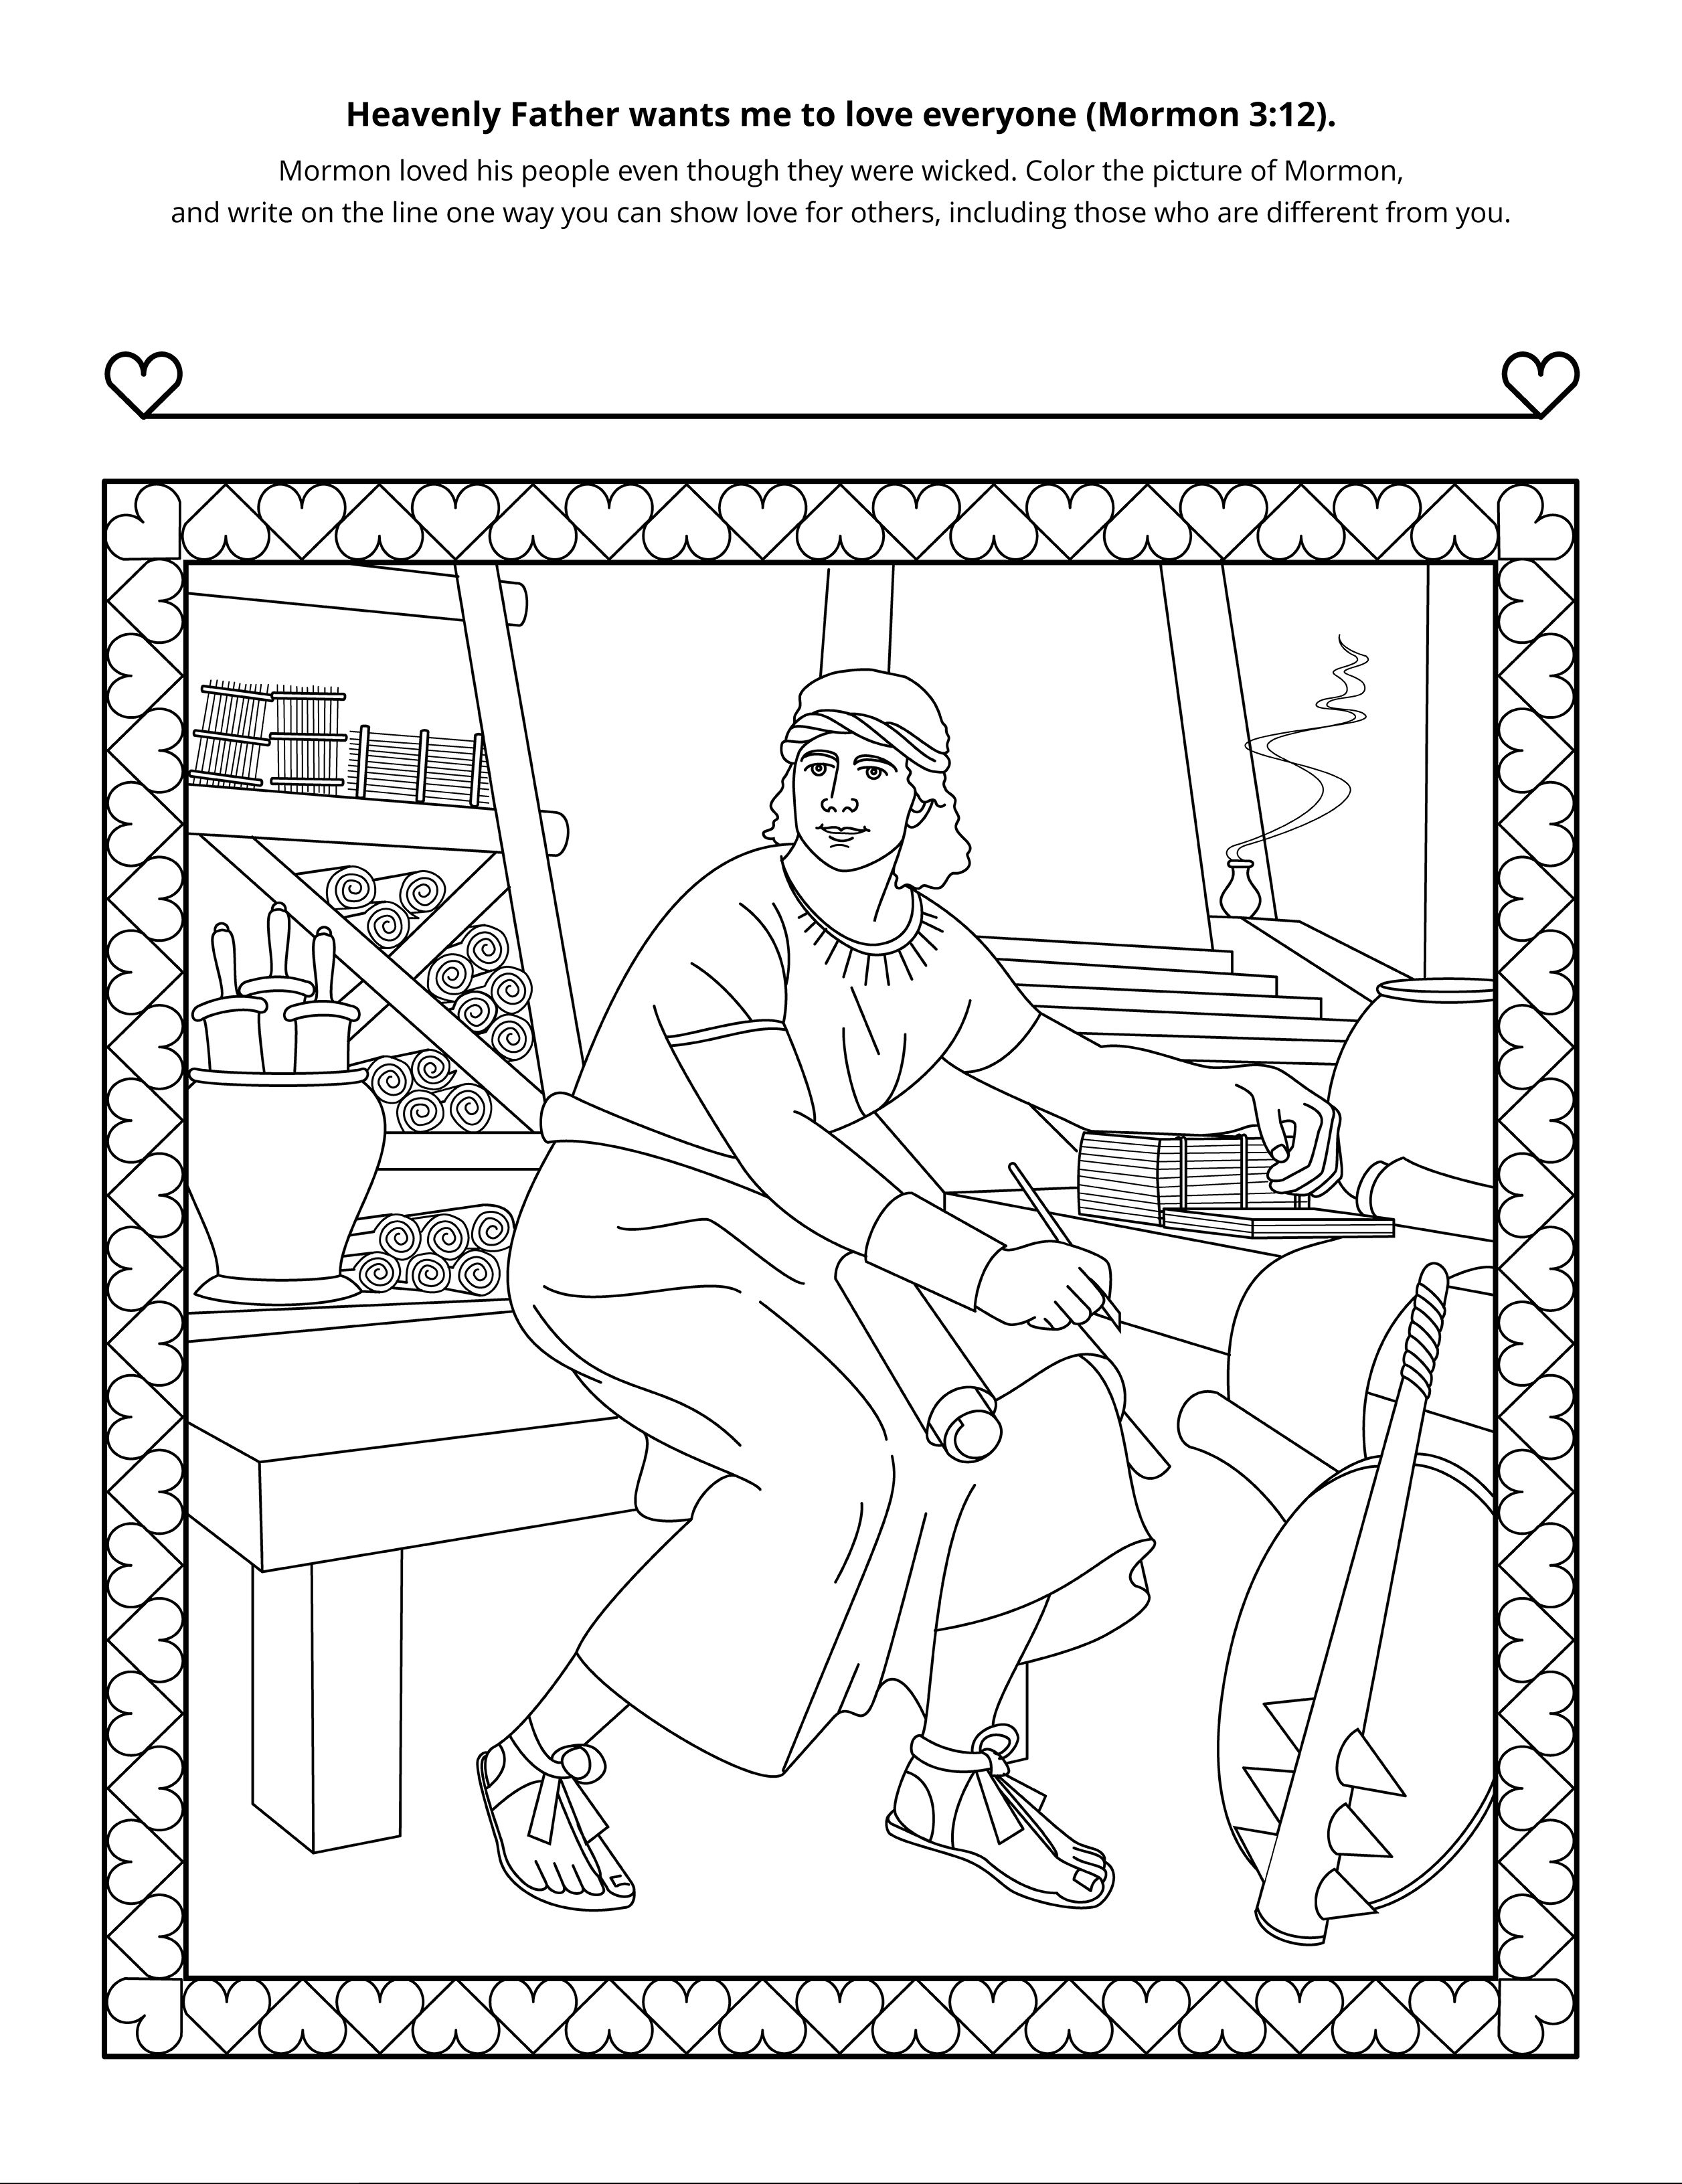 A line-art drawing of Mormon.